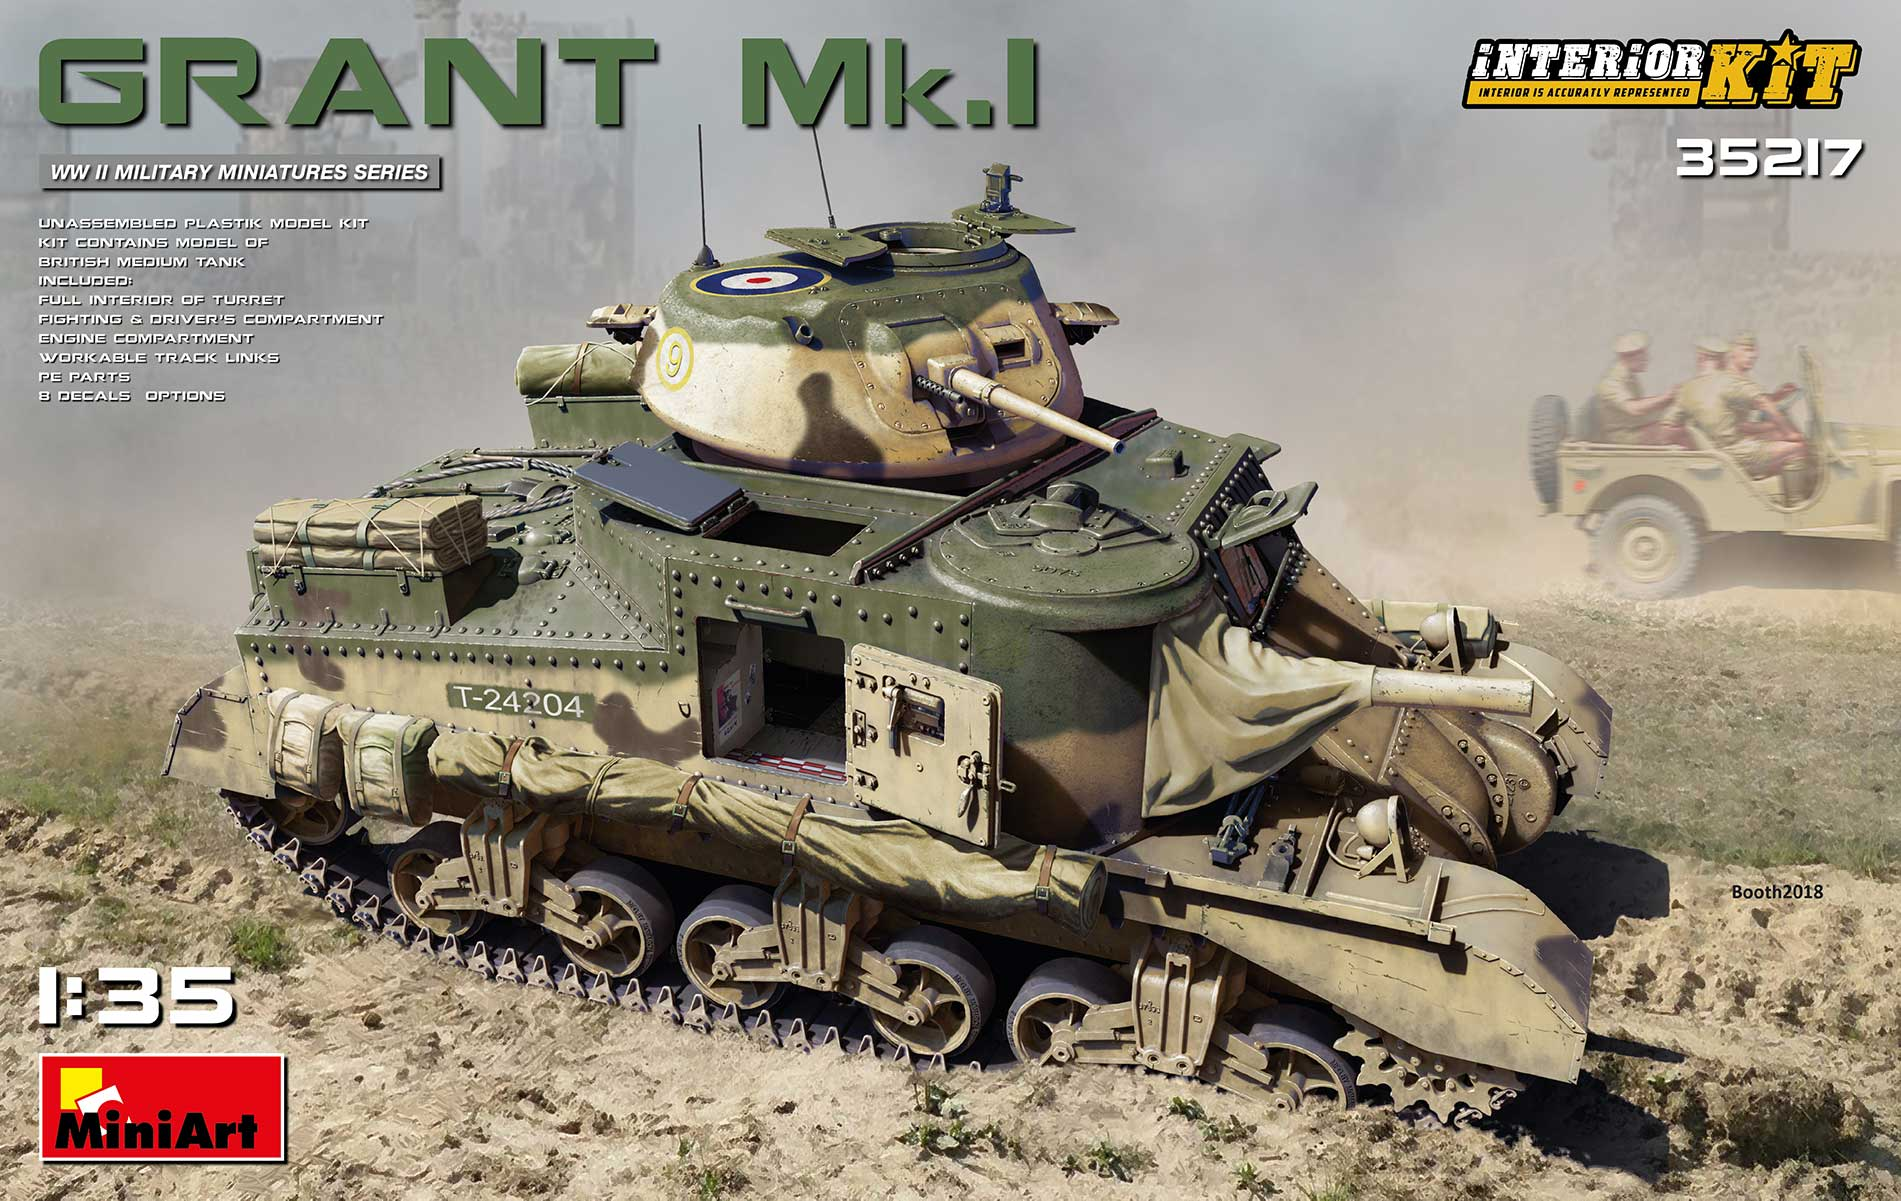 closer at hot products famous brand NEW KIT IN PROGRESS-GRANT Mk.I INTERIOR KIT 35217 1/35 FULL KIT ...